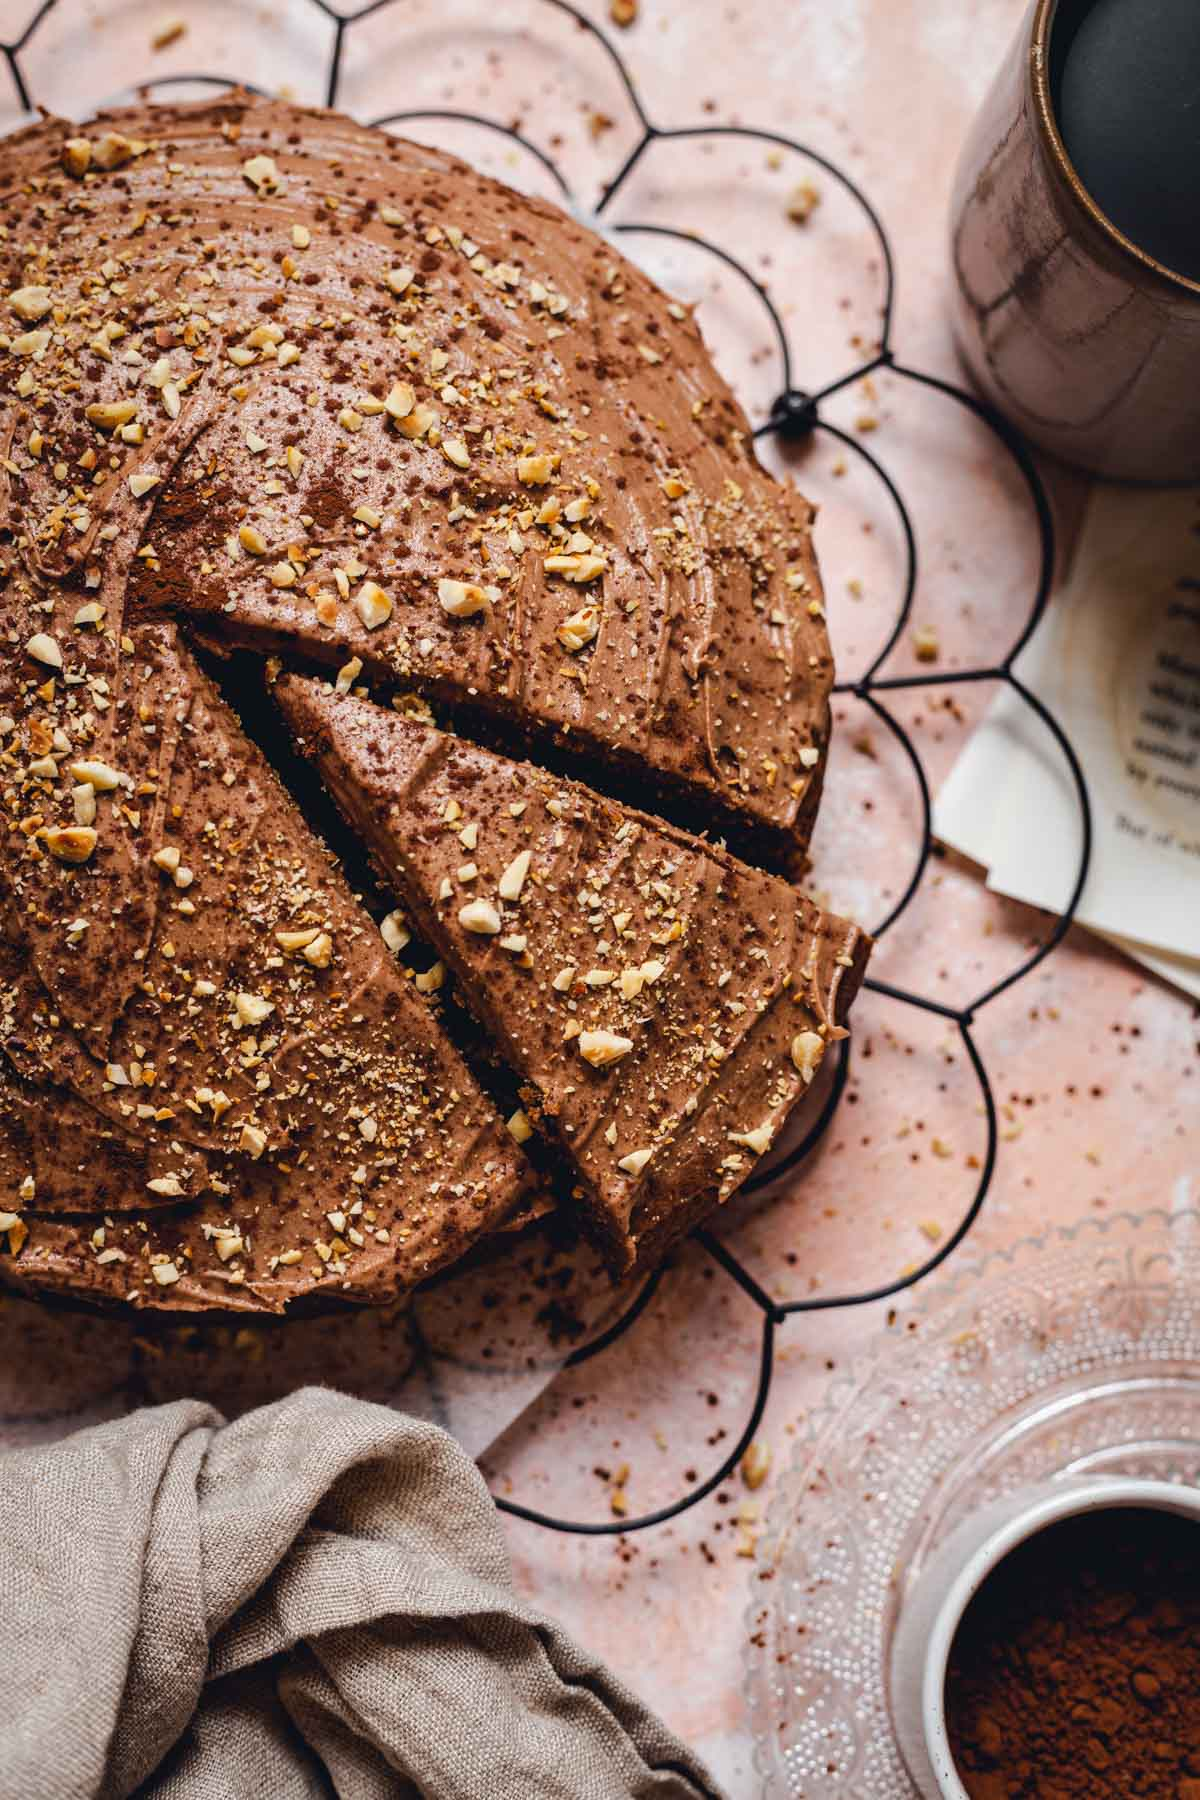 A round coffee cake placed on a black cooling rack with various objects around it.